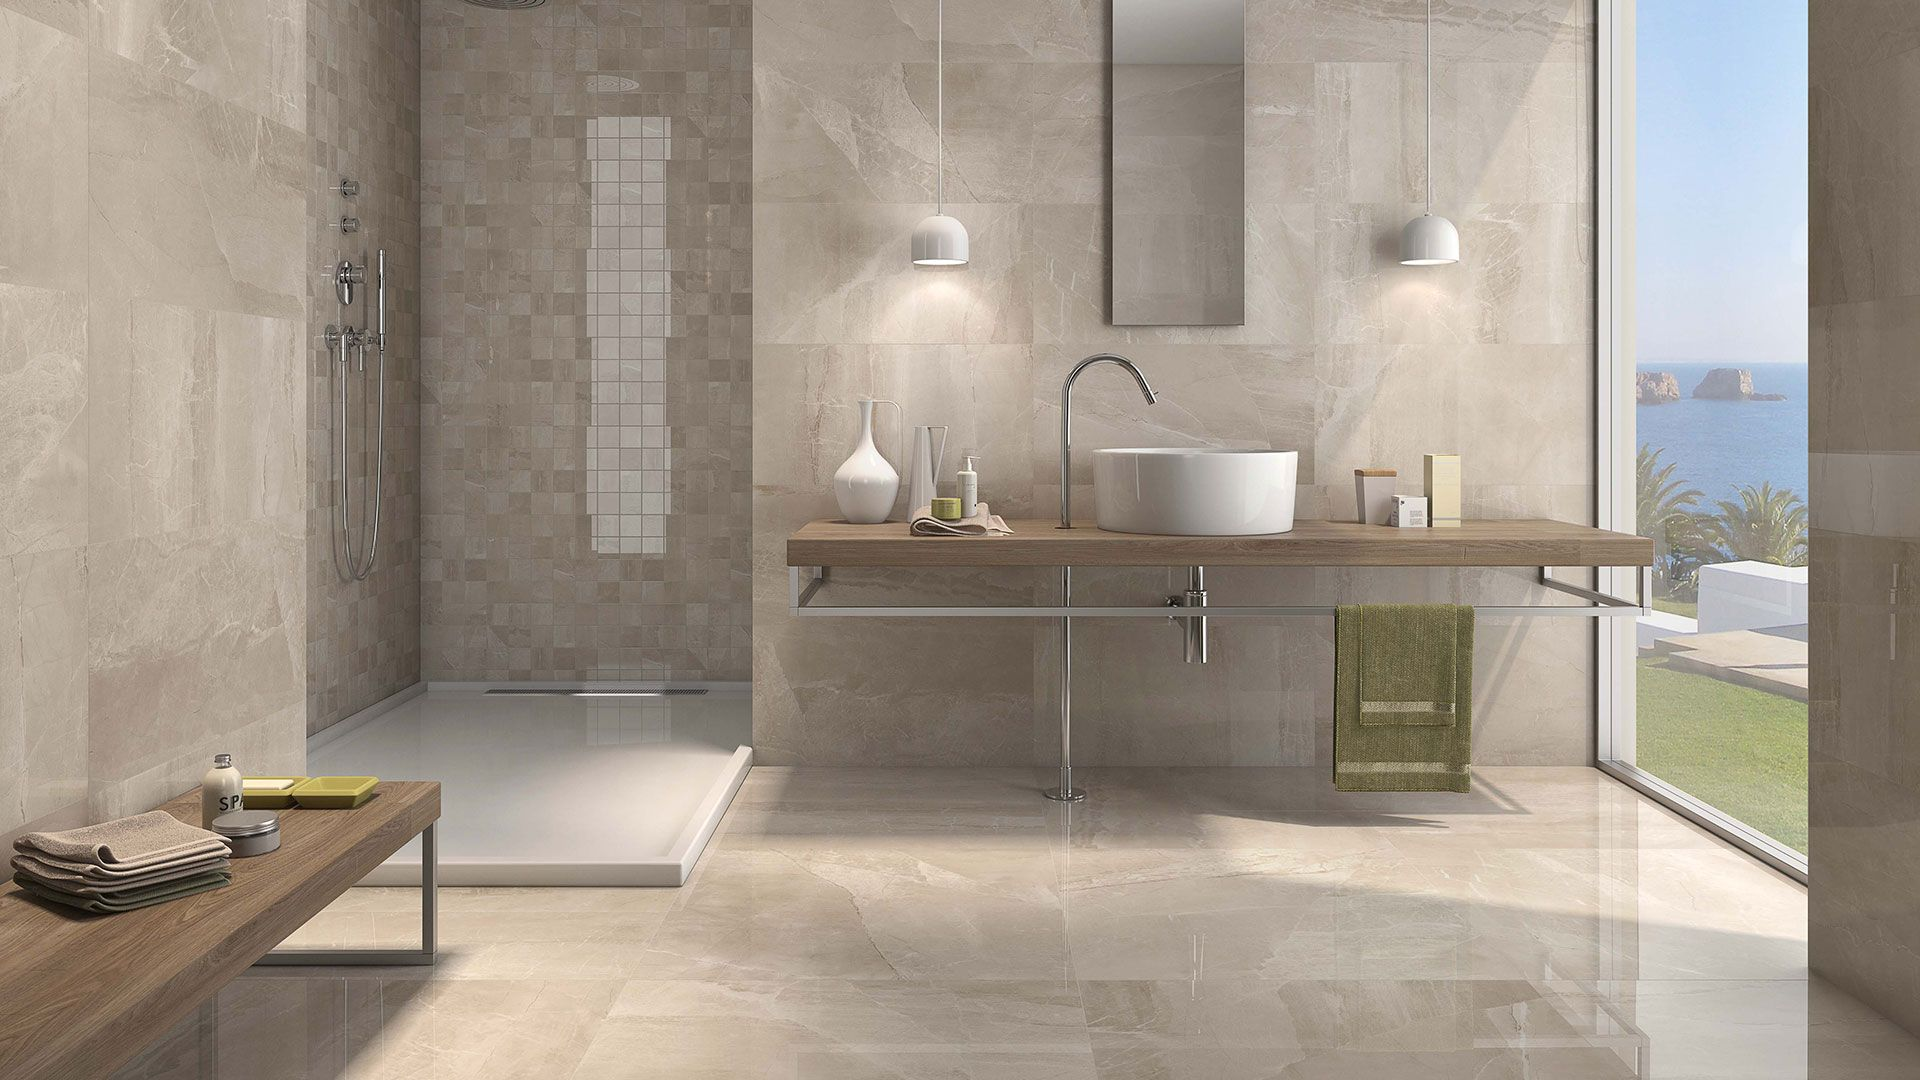 Image Result For Contemporary Taupe Tile Floor 24x24 Residential